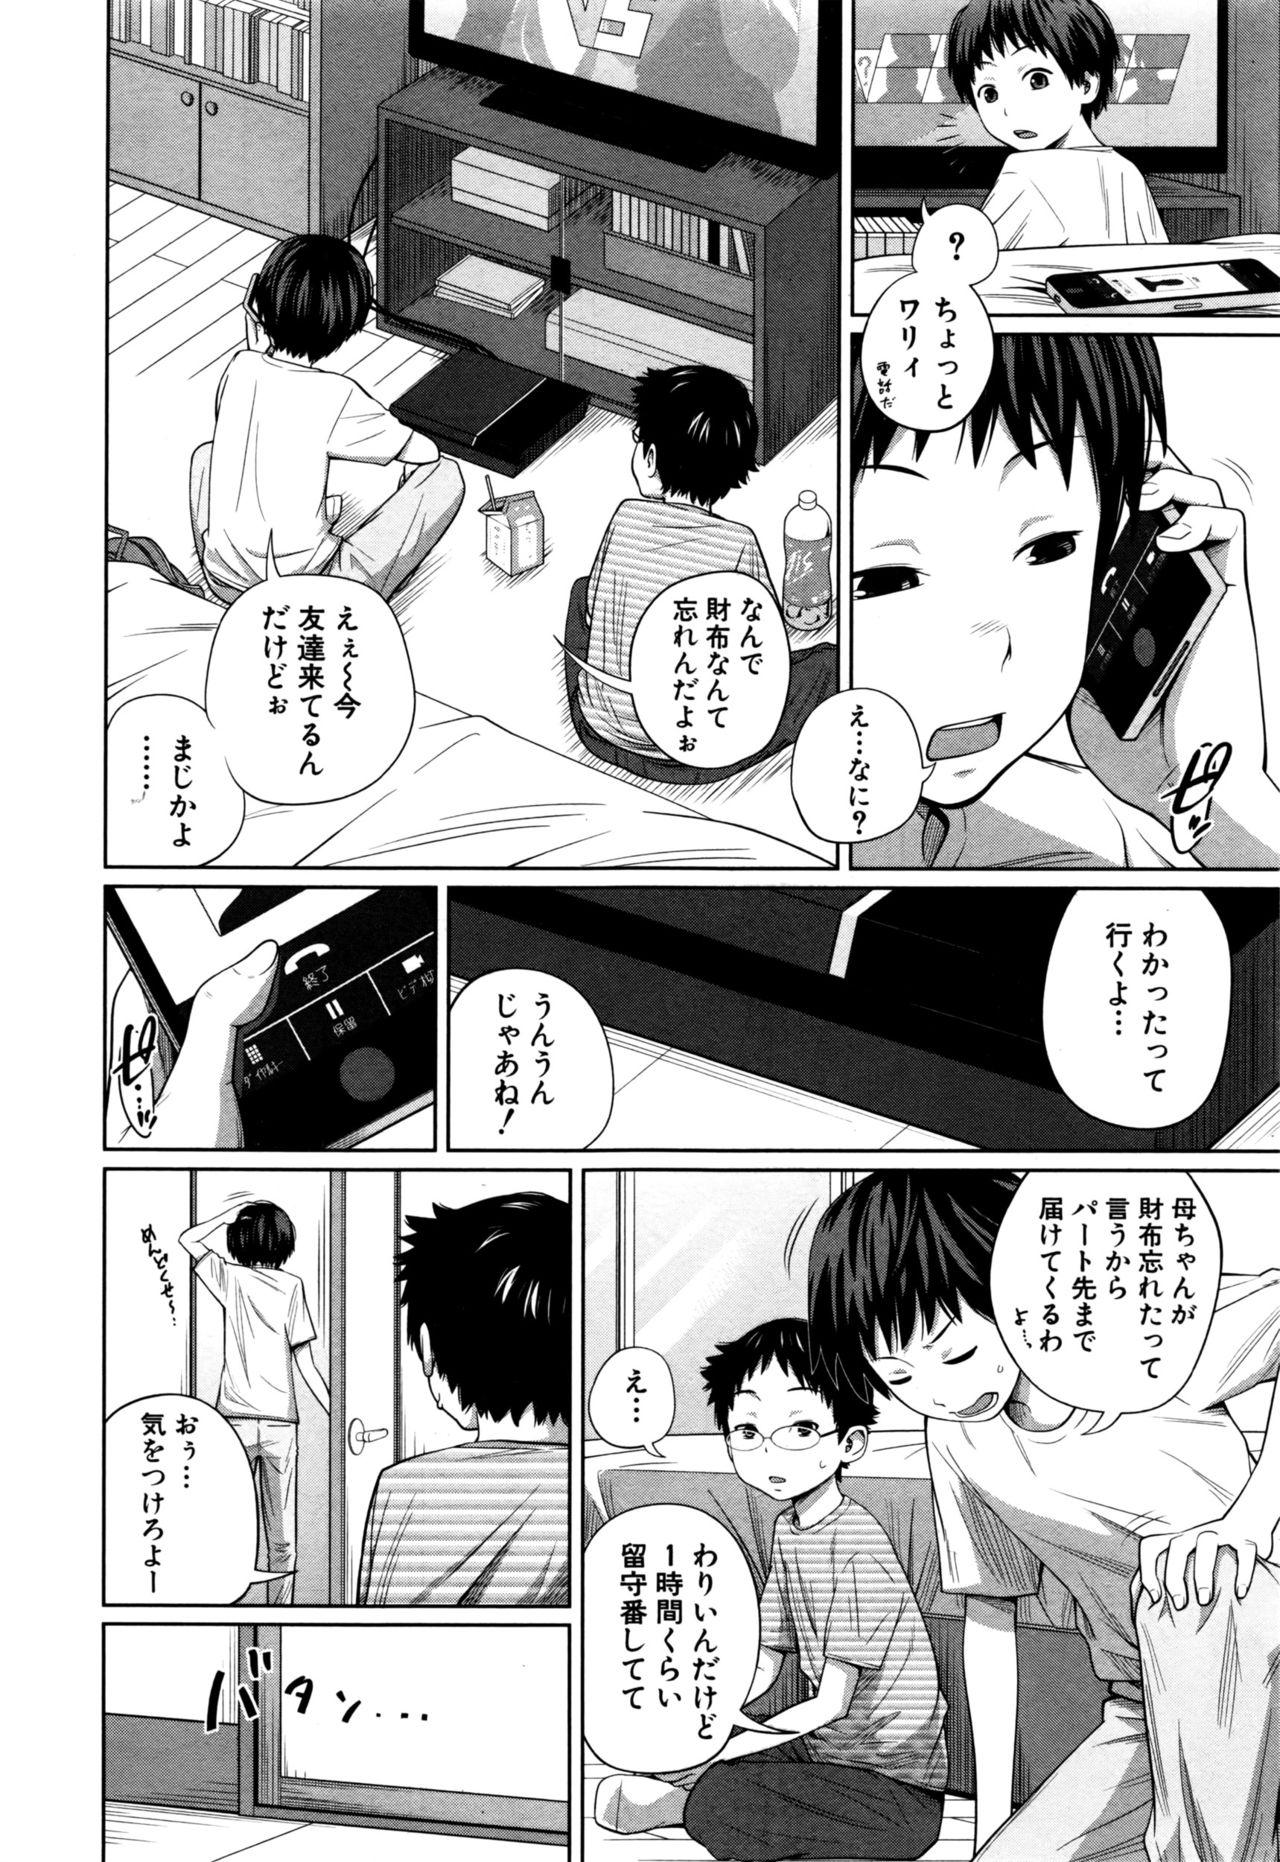 BUSTER COMIC 2016-09 130